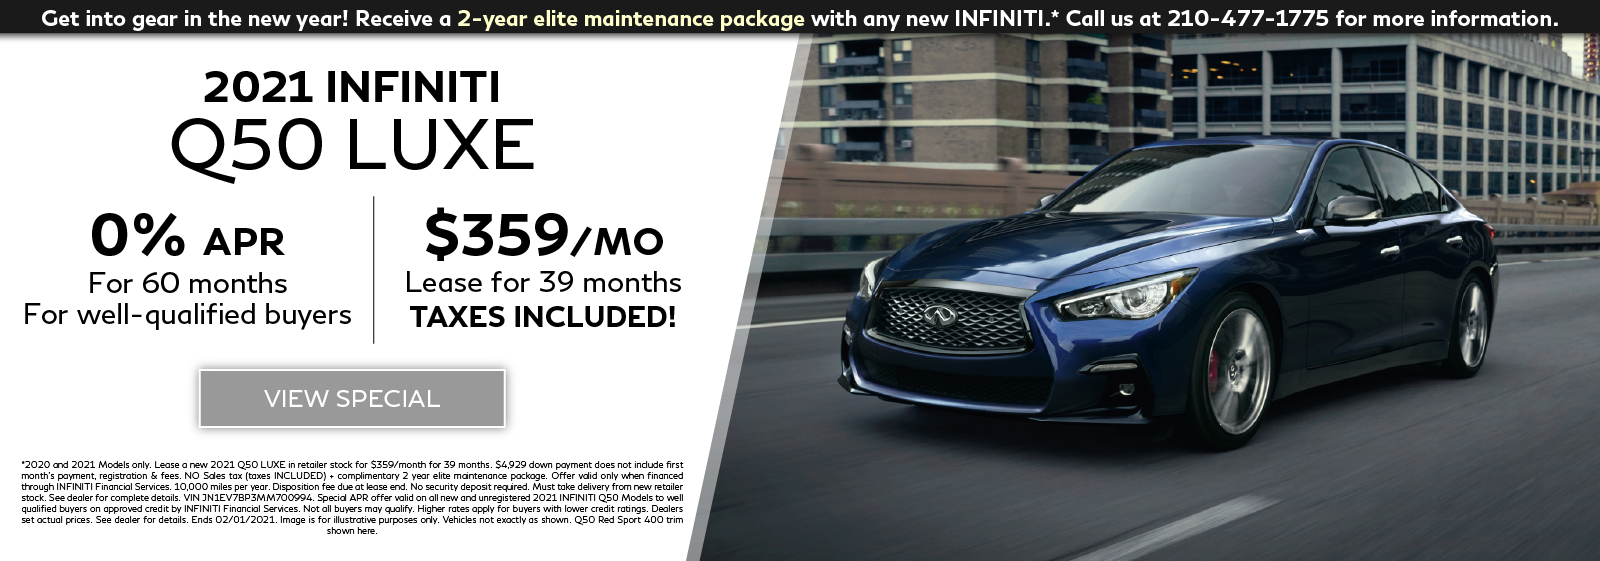 Well-qualified customers can lease a new 2021 Q50 LUXE for $359 per month for 39 months OR get 0% APR financing for 60 months plus get a 2-year elite maintentenance package. Click to view special.